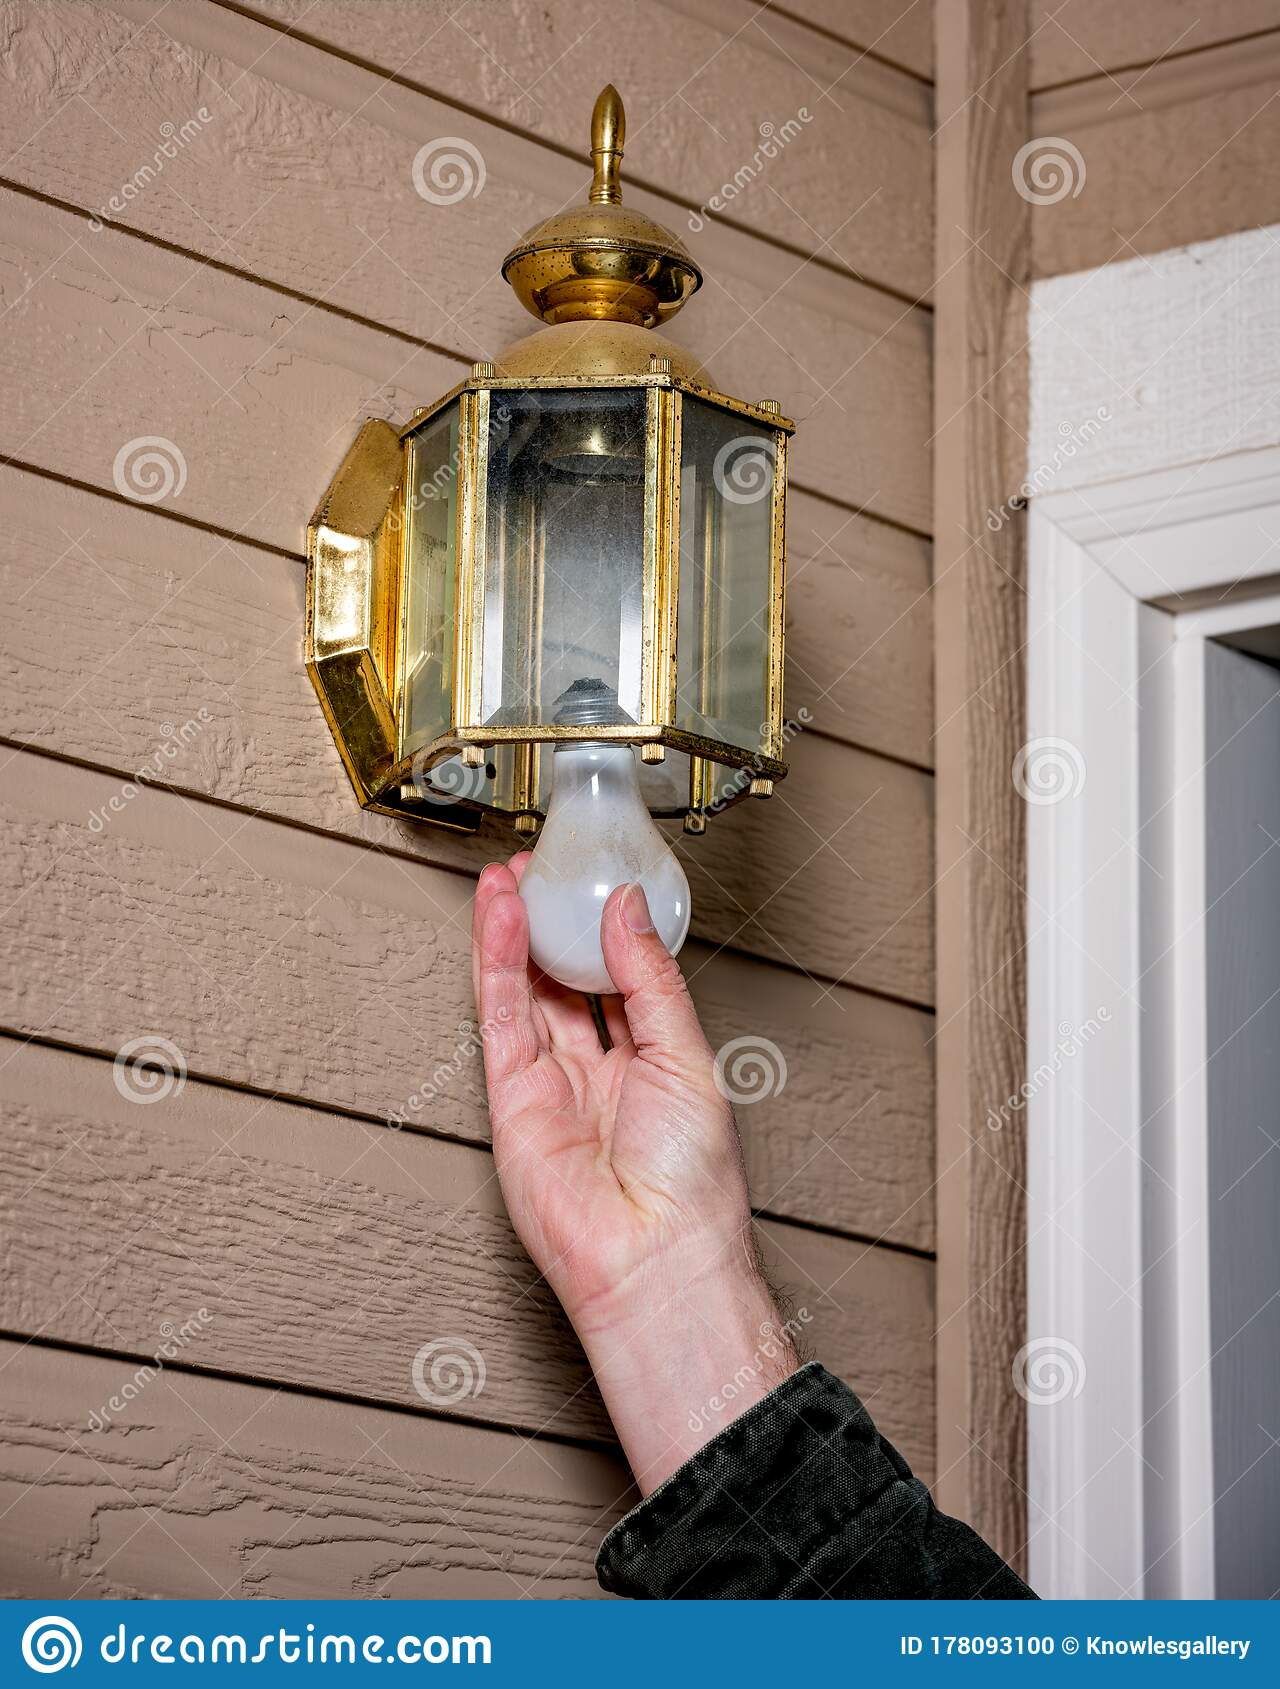 Homeowner Replaces A Light Bulb In An Outdoor Light Fixture Stock Photo Image Of Removal Repairman 178093100